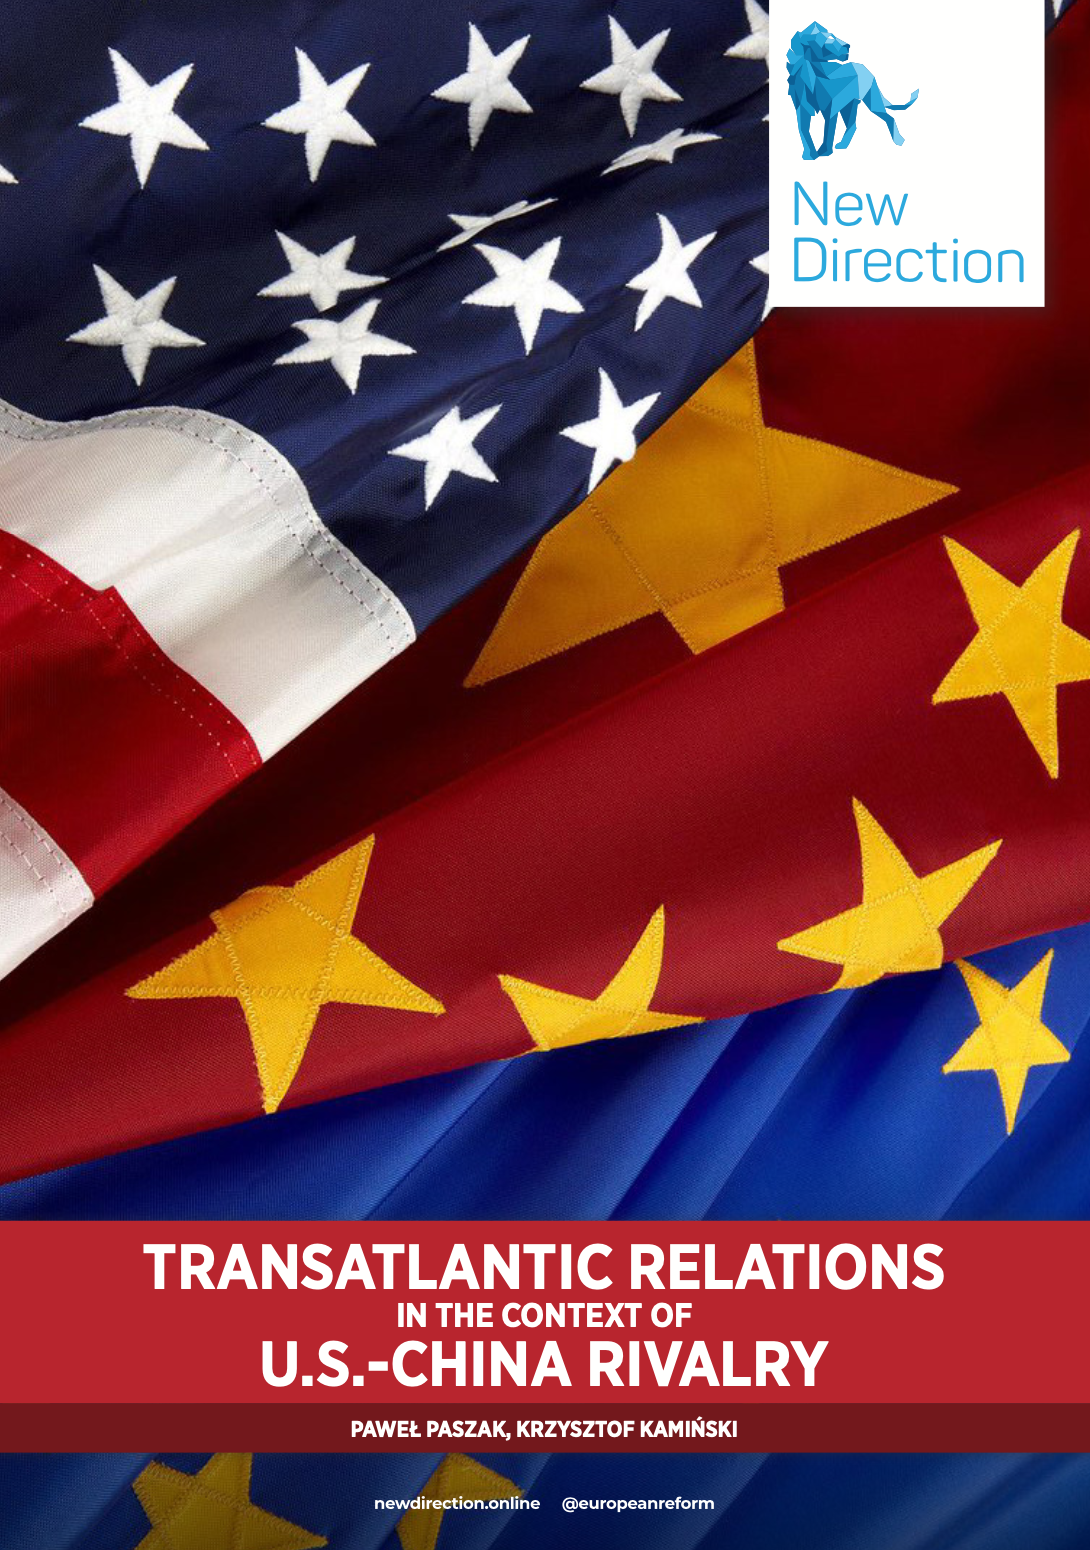 TRANSATLANTIC RELATIONS IN THE CONTEXT OF U.S.-CHINA RIVALRY